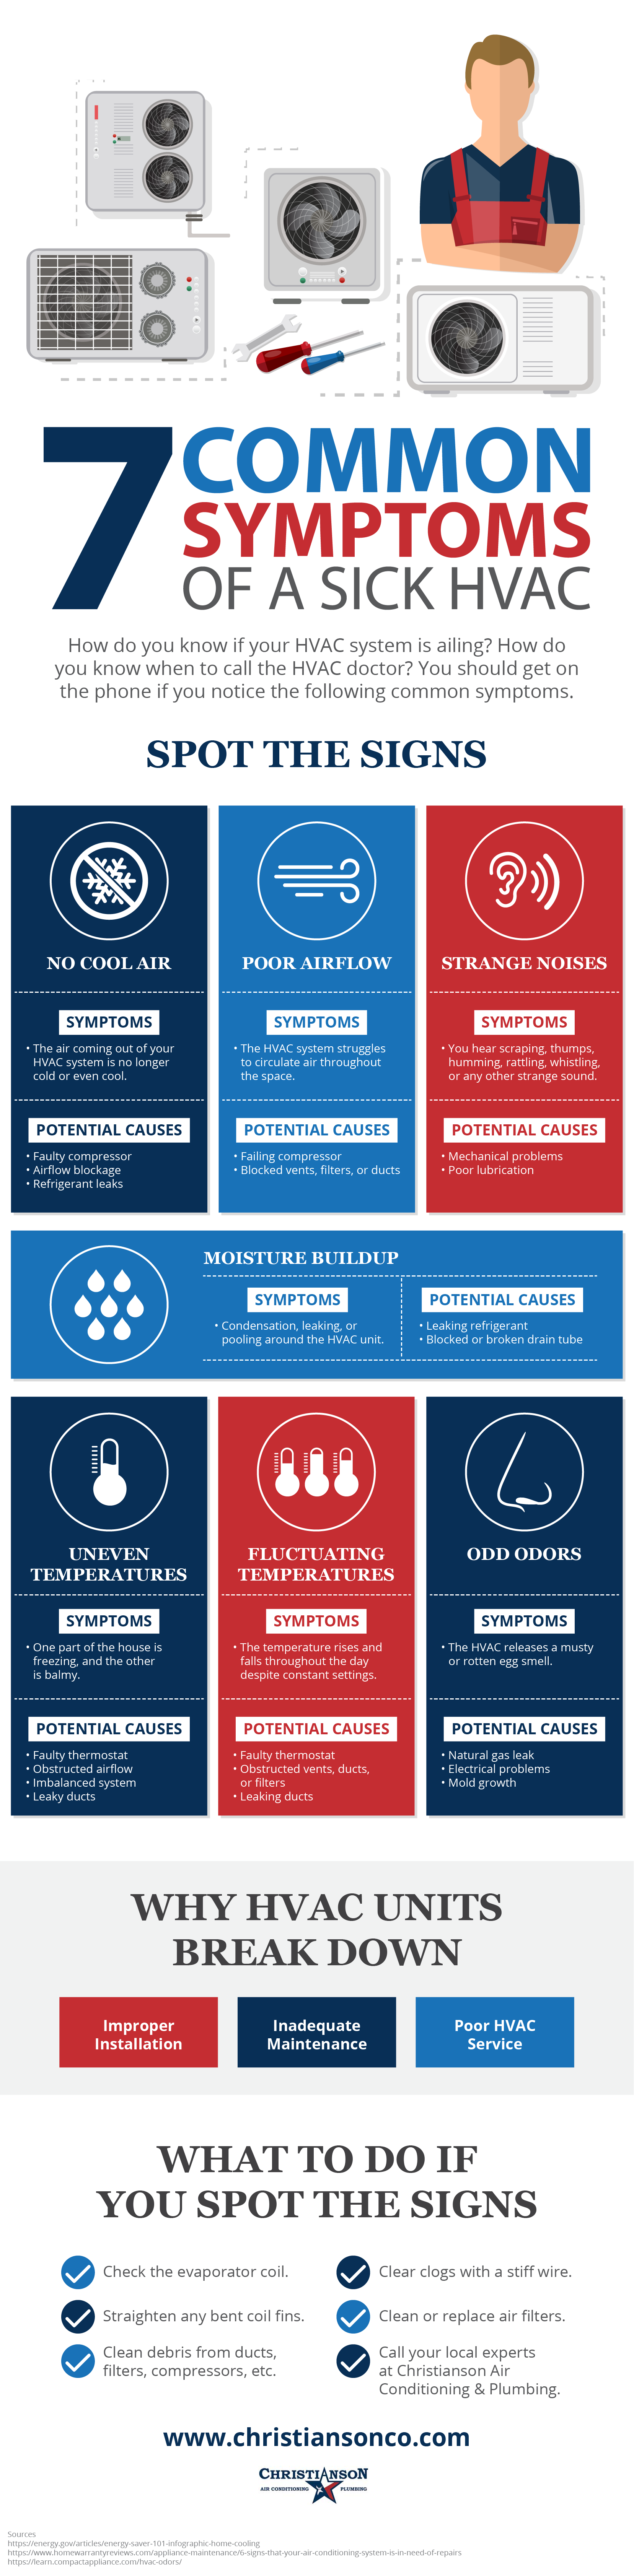 7 Common Symptoms of a Sick HVAC Infographic